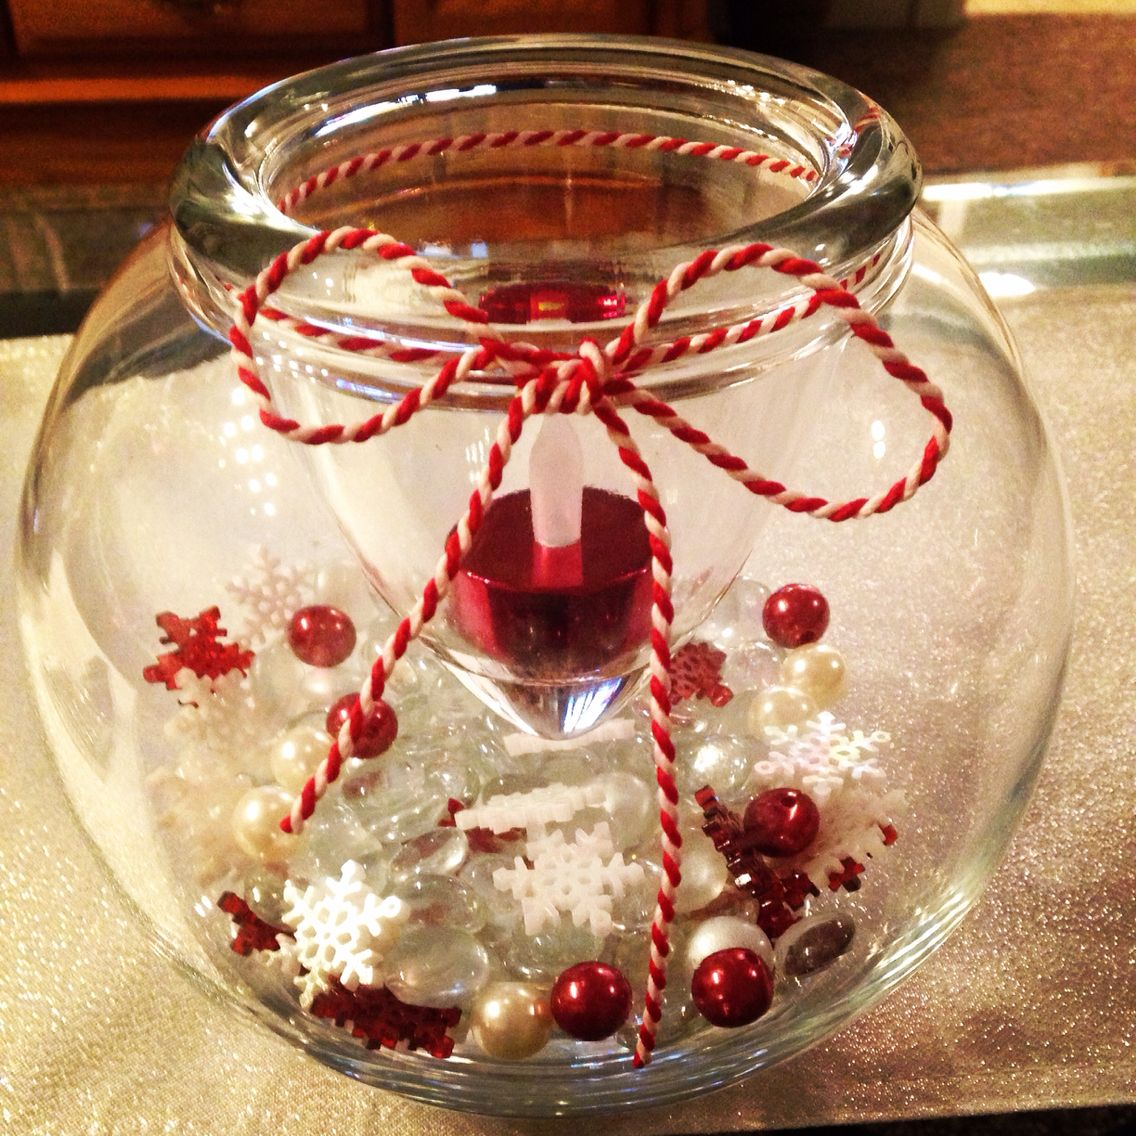 Christmas Decorations I Made This With A Glass Bowl Christmas Beads On The Bottom Candle Am A Bow Candle Arrangements Glass Bowl Decor Christmas Candle